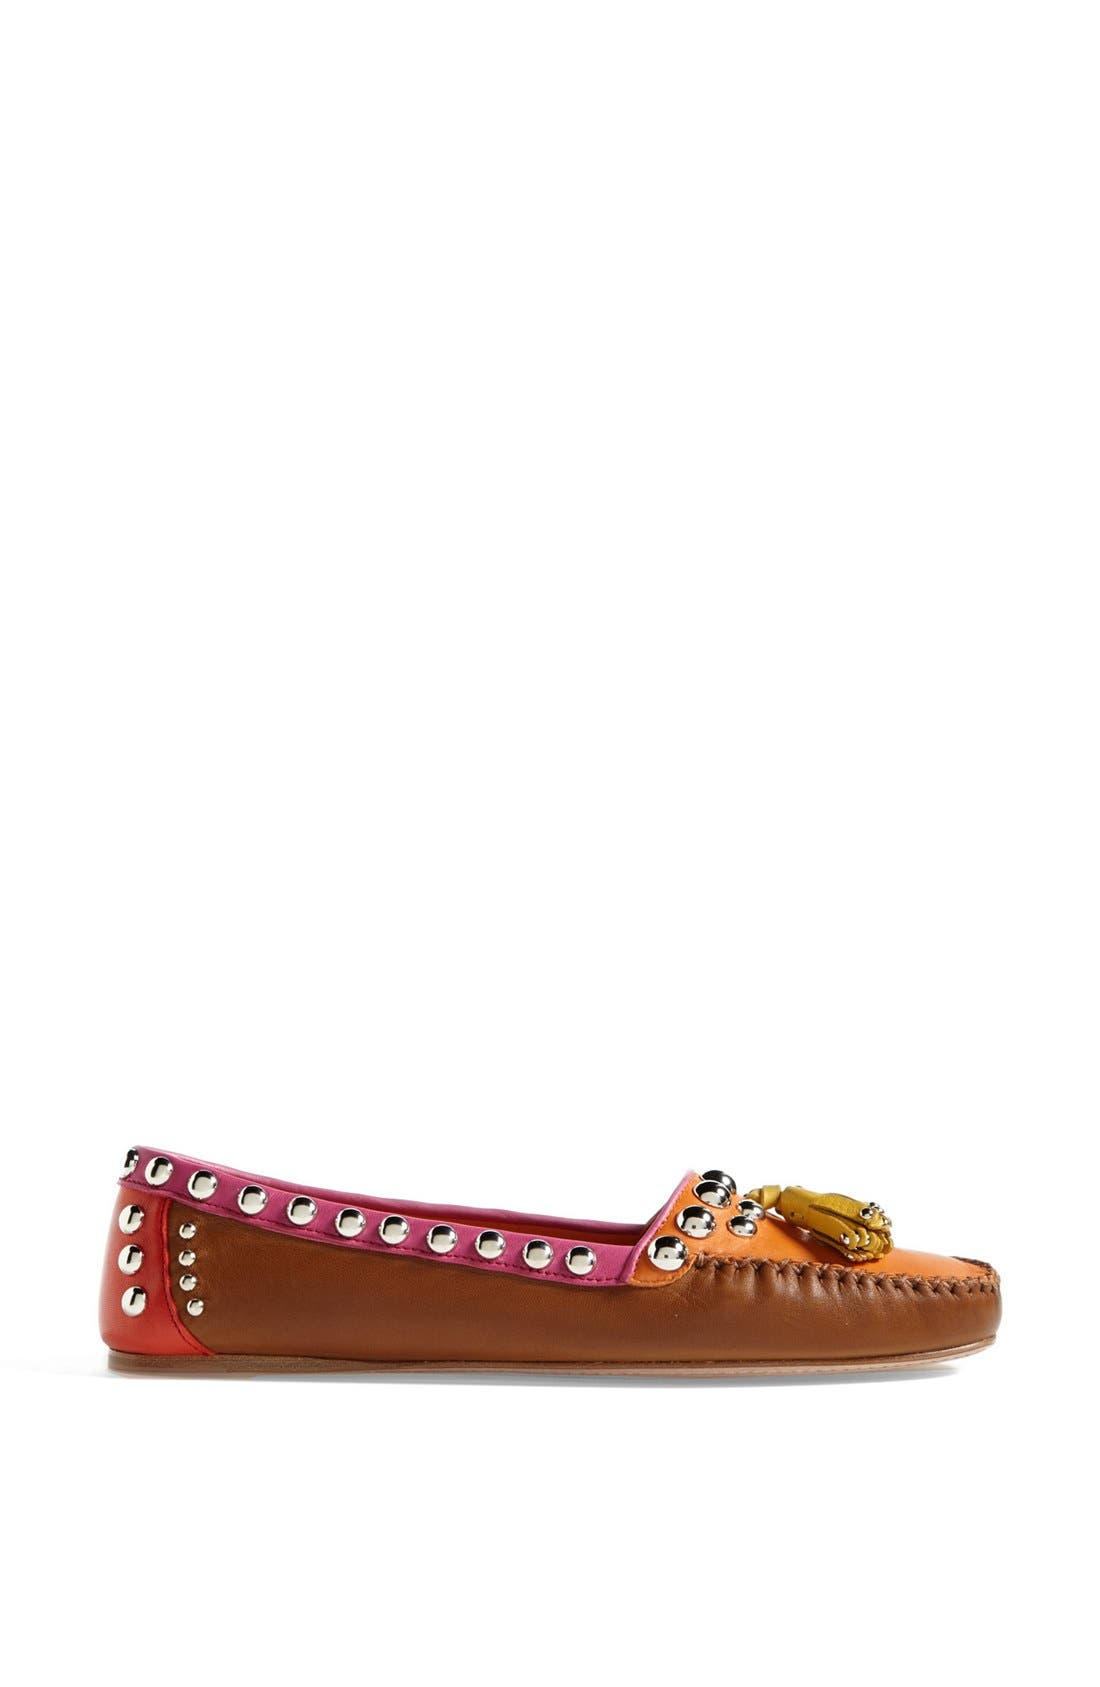 Alternate Image 3  - Prada Studded Tassel Moccasin